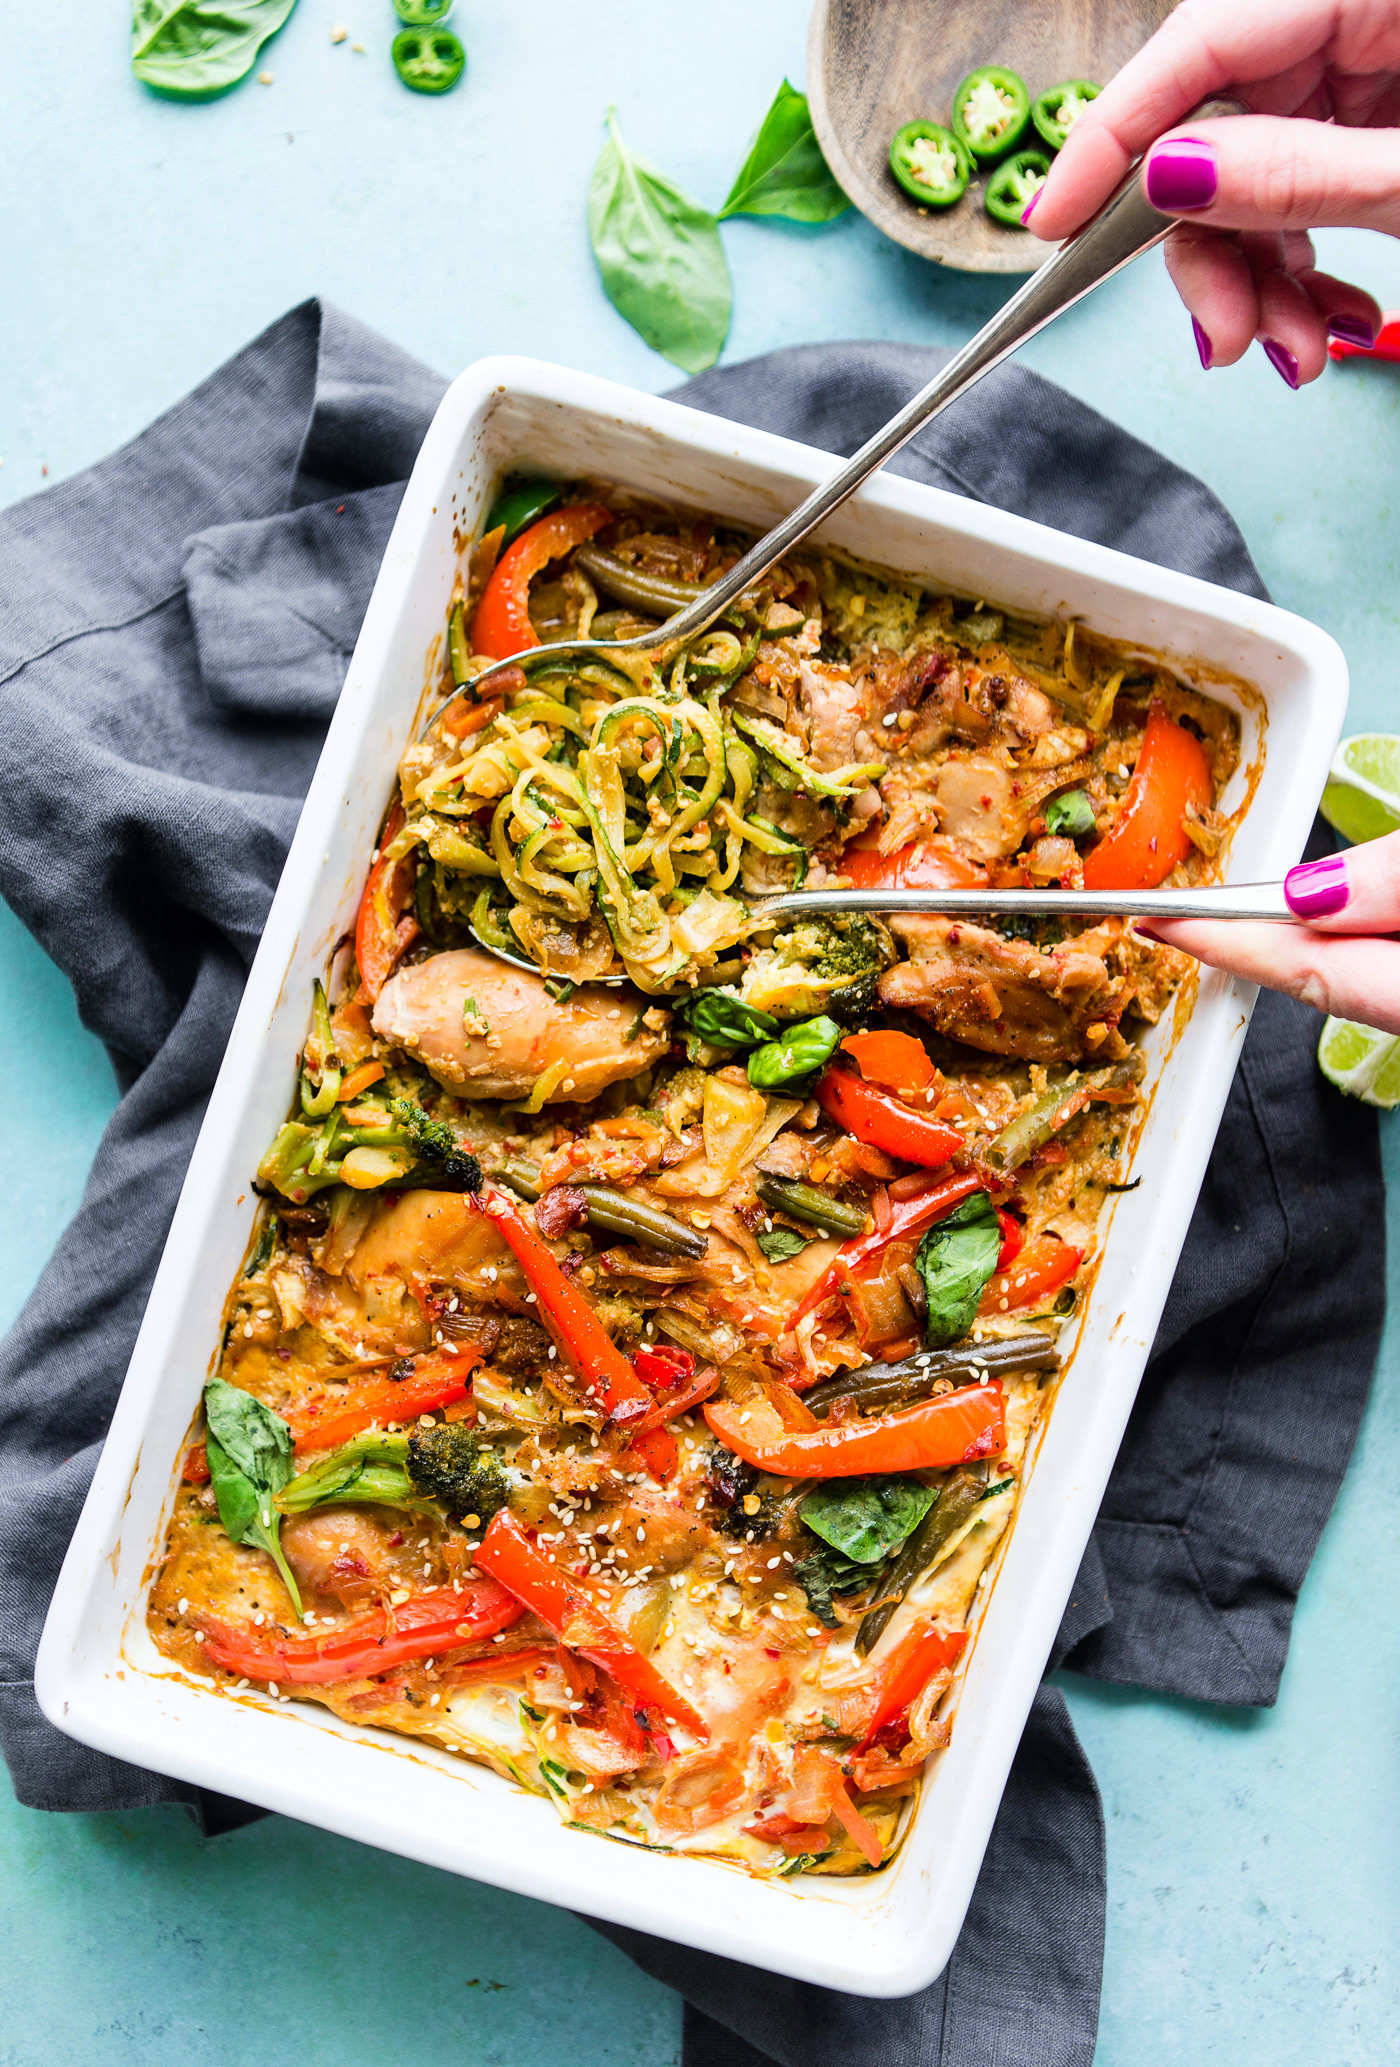 Drunken Chicken Zoodle Casserole takes a spin on the original Pad kee mao Asian stir fry and puts it in casserole form. A paleo zucchini noodle casserole with tons of flavor, Thai spices, and simple healthy ingredients! A delicious, light, high protein, low carb recipe. dairy free and gluten-free anti-inflammatory meal plan